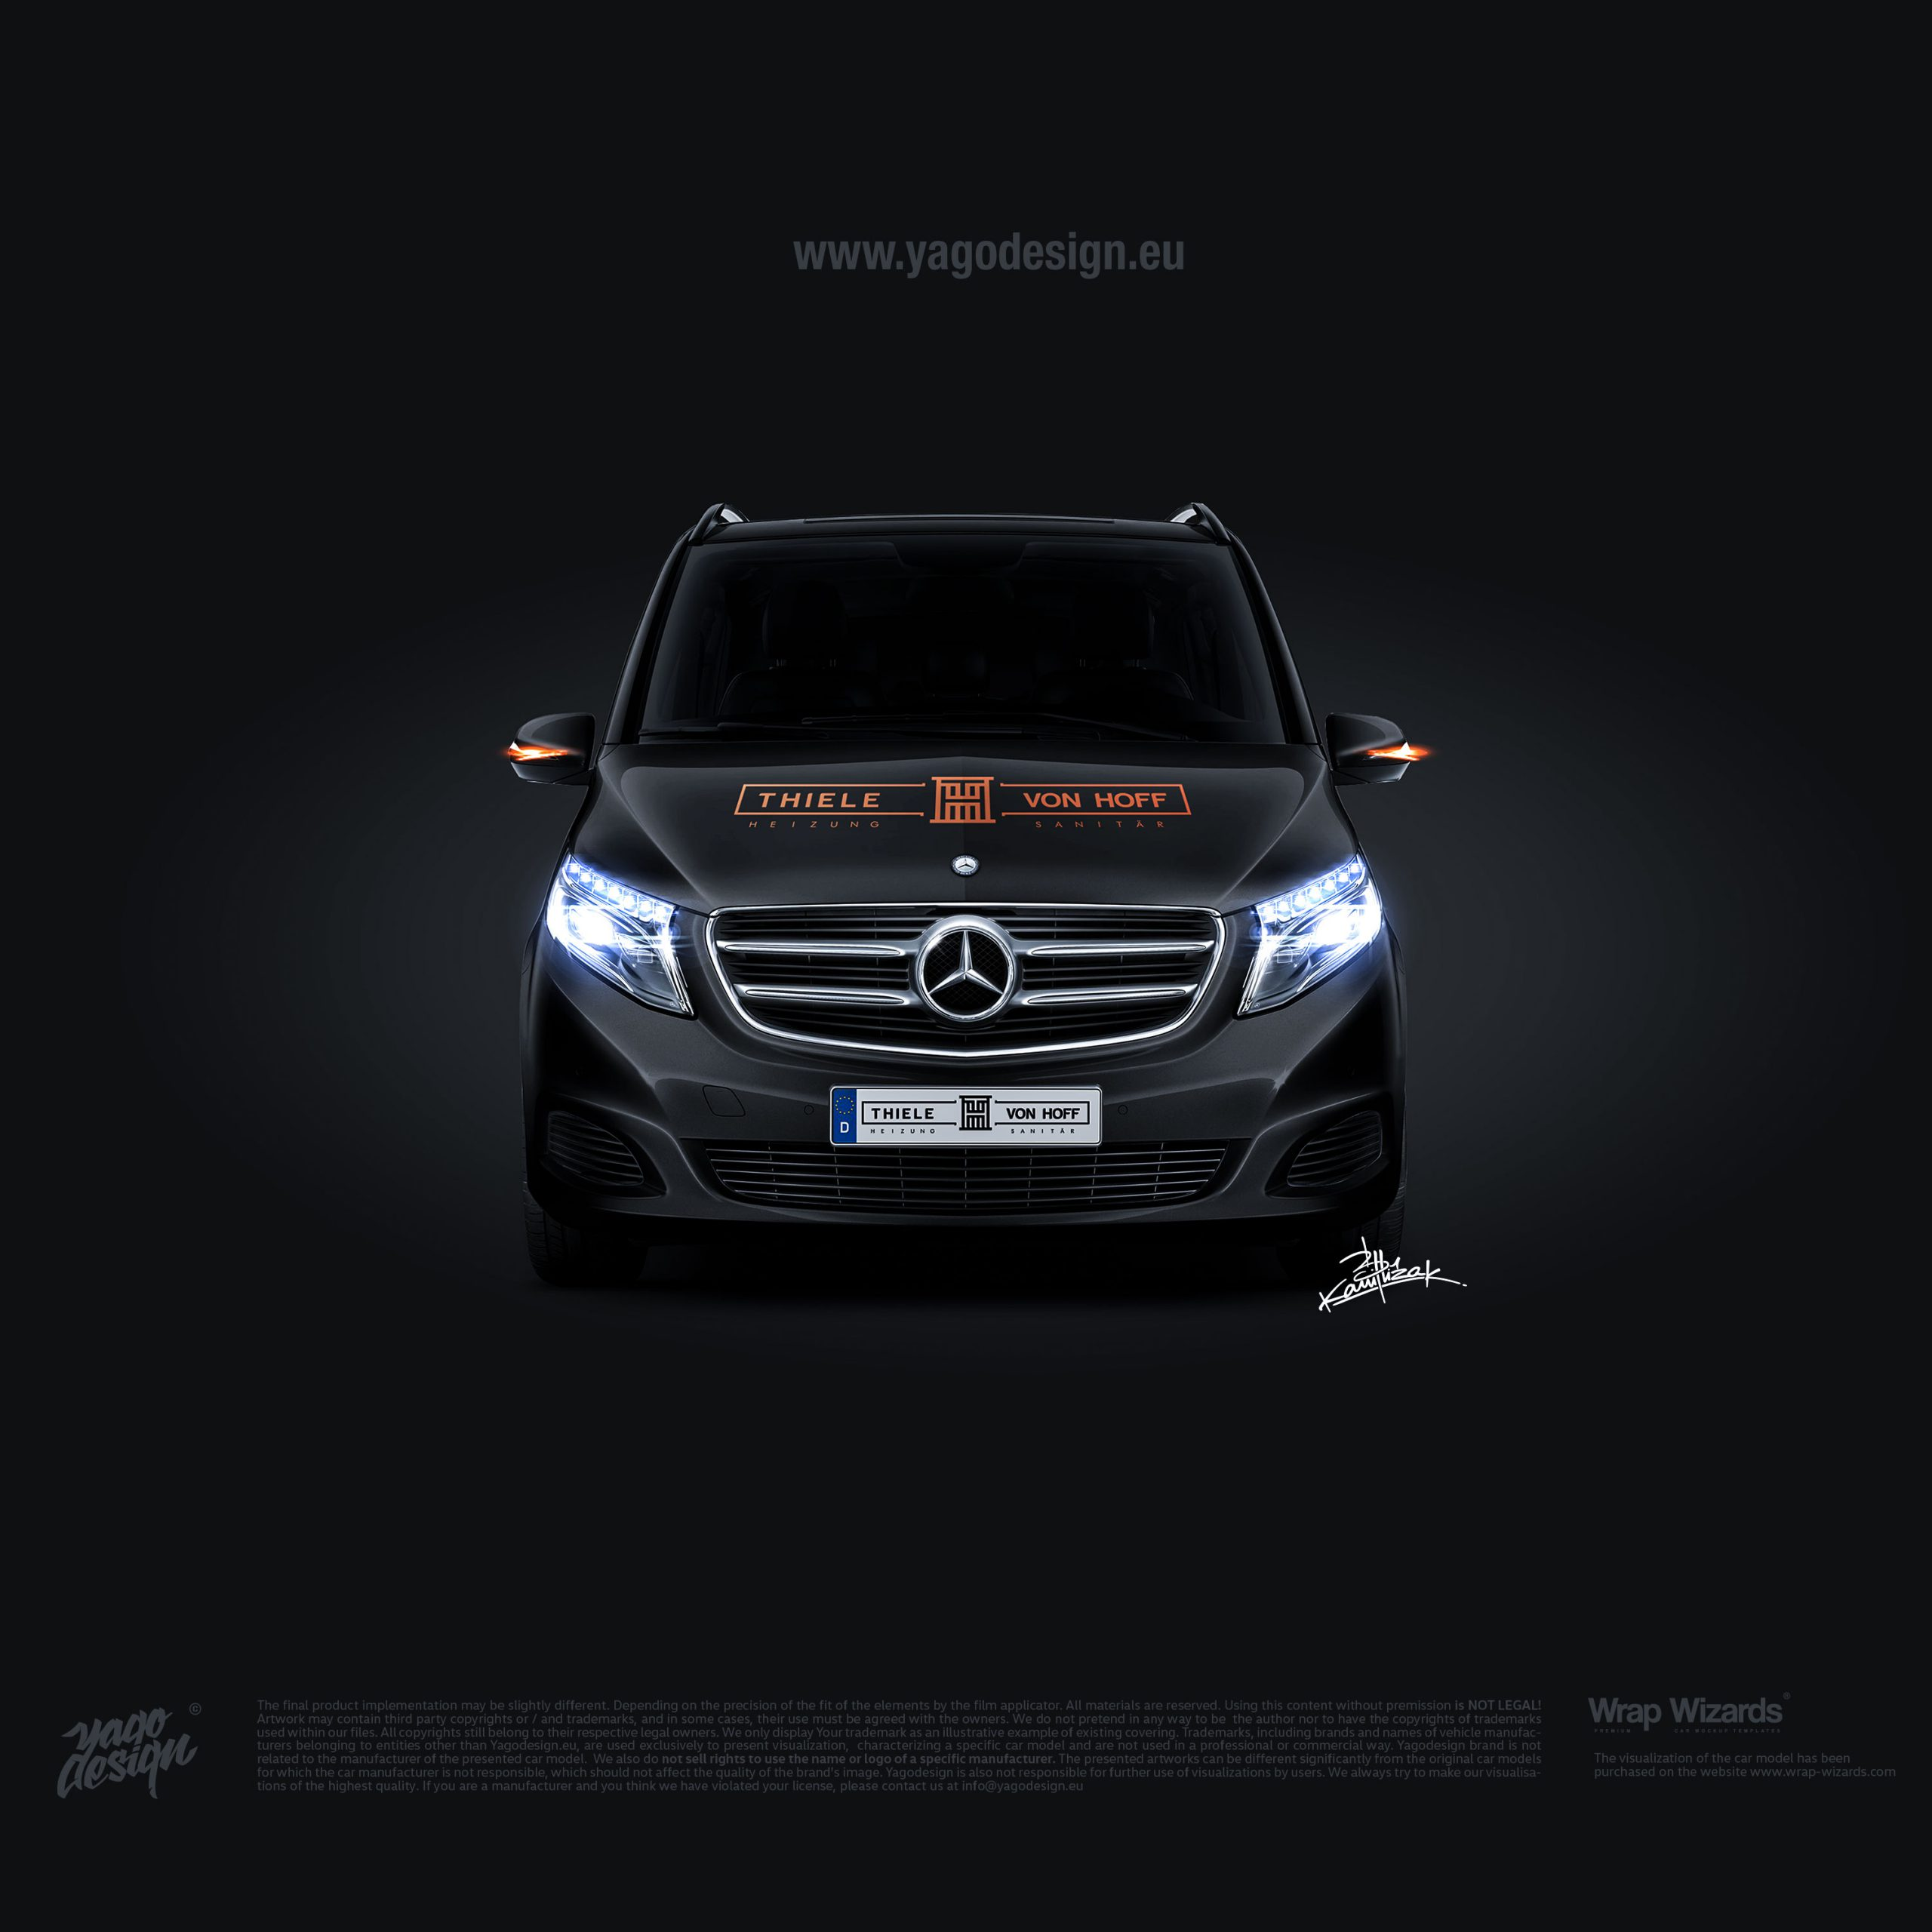 Mercedes-Benz-Vito-2020-by-Yagodesign-Automotive-Design-Studio4-scaled